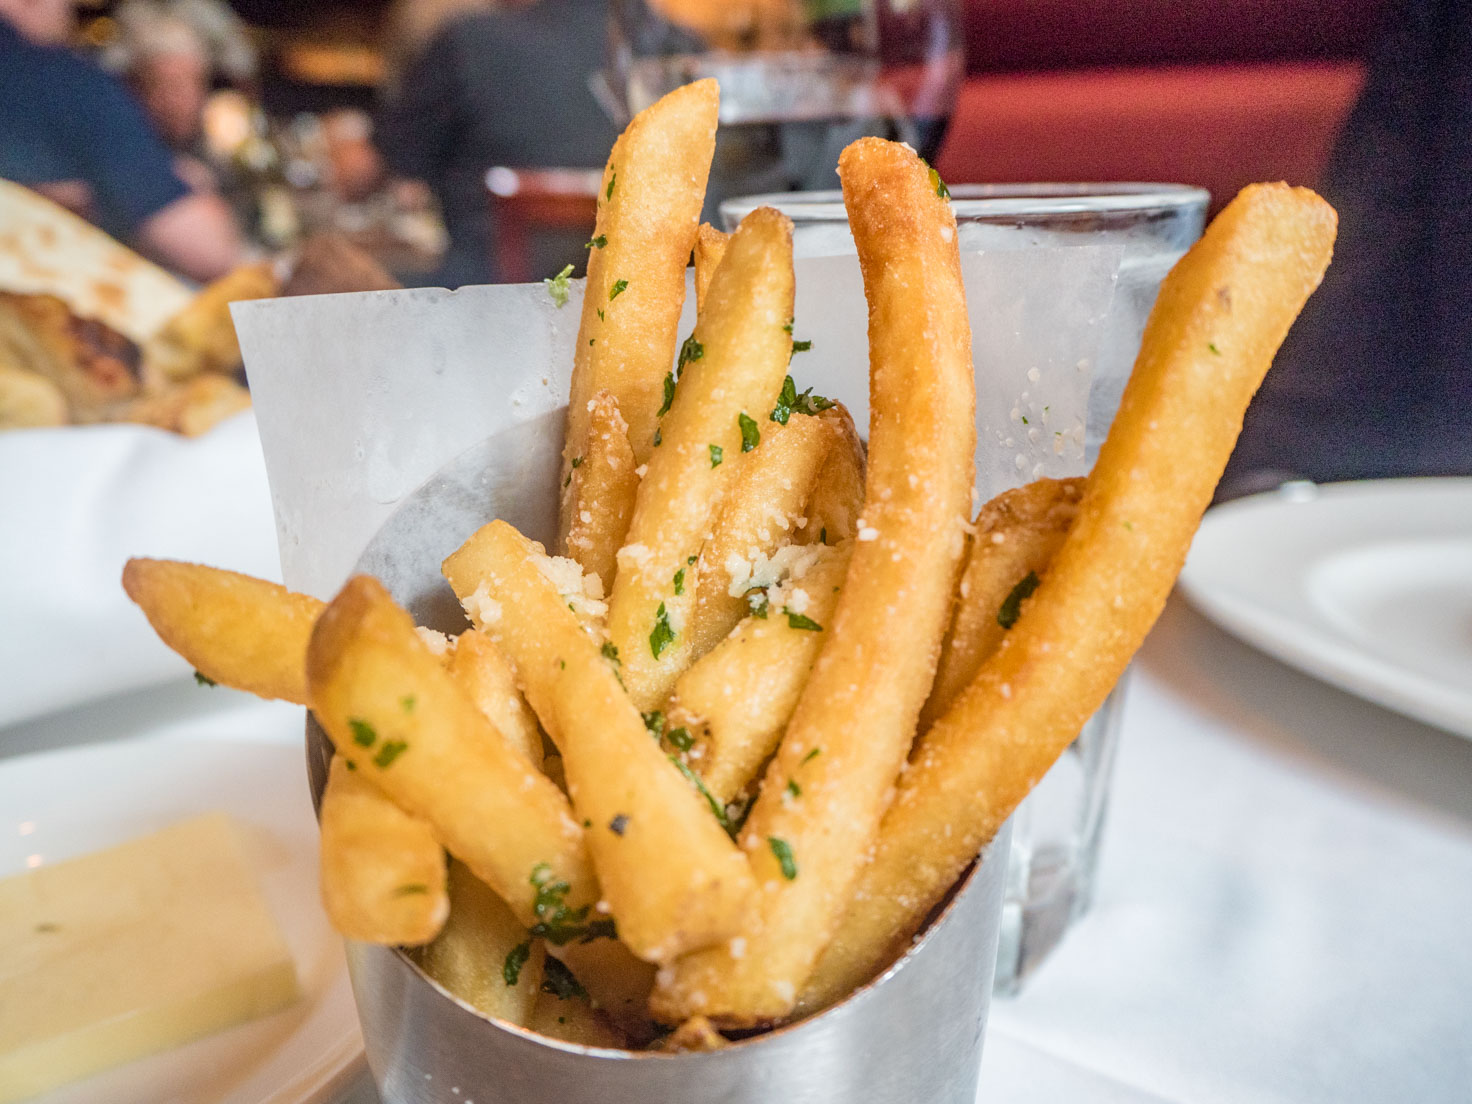 Parmesan and truffle fries at Capital Grille Chicago downtown